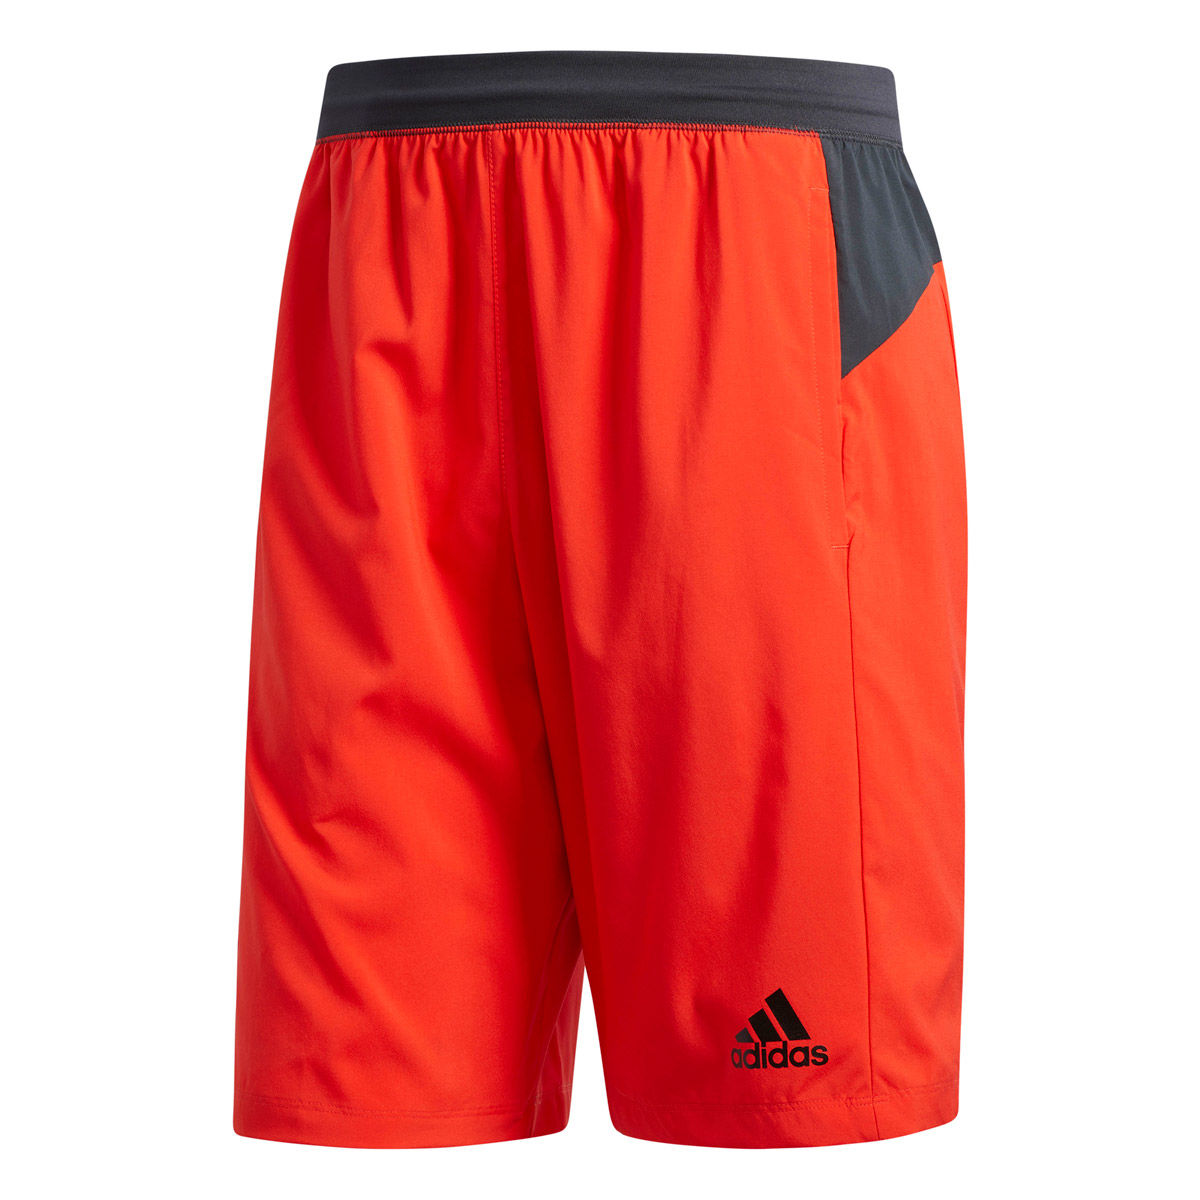 adidas Design 2 Move Mens Woven Short